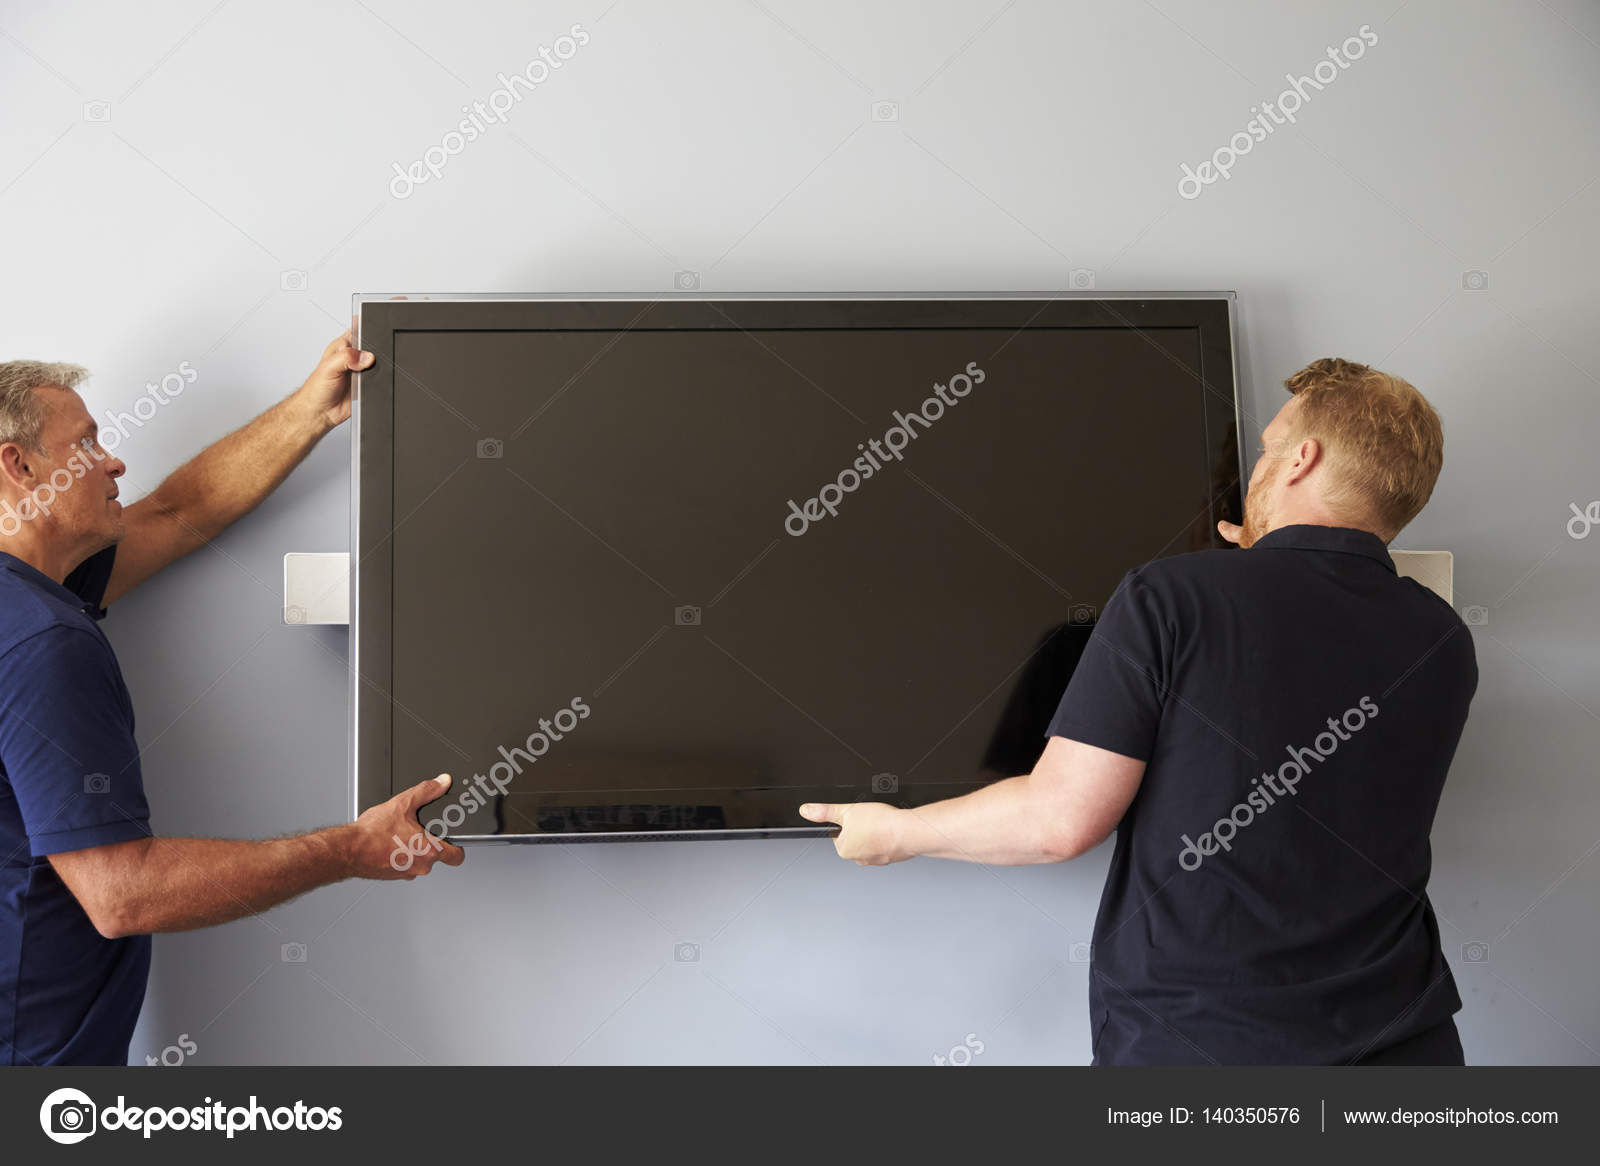 Manner Tv An Der Wand Anbringen Stockfoto C Monkeybusiness 140350576